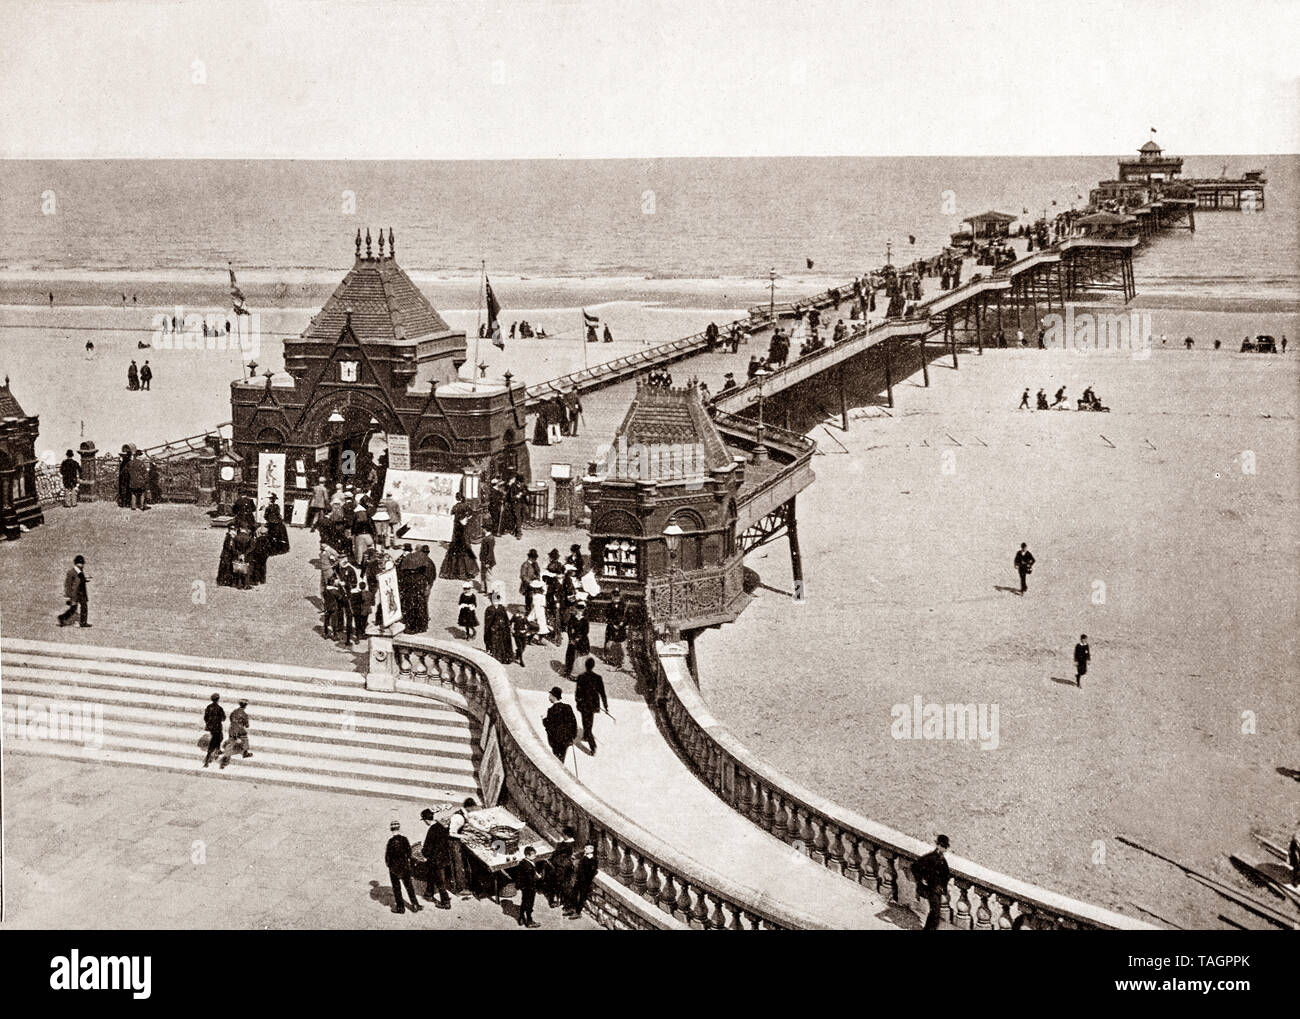 A late 19th Century view of Skegness pier opened on Whit Monday in June 1881 by the Duke of Edinburgh Alfred, Duke of Saxe-Coburg and Gotha and was at the time the fourth longest in England, at a length of 614 yards (561 m) long. Skegness is a seaside town  on the Lincolnshire coast of the North Sea, England, - Stock Image